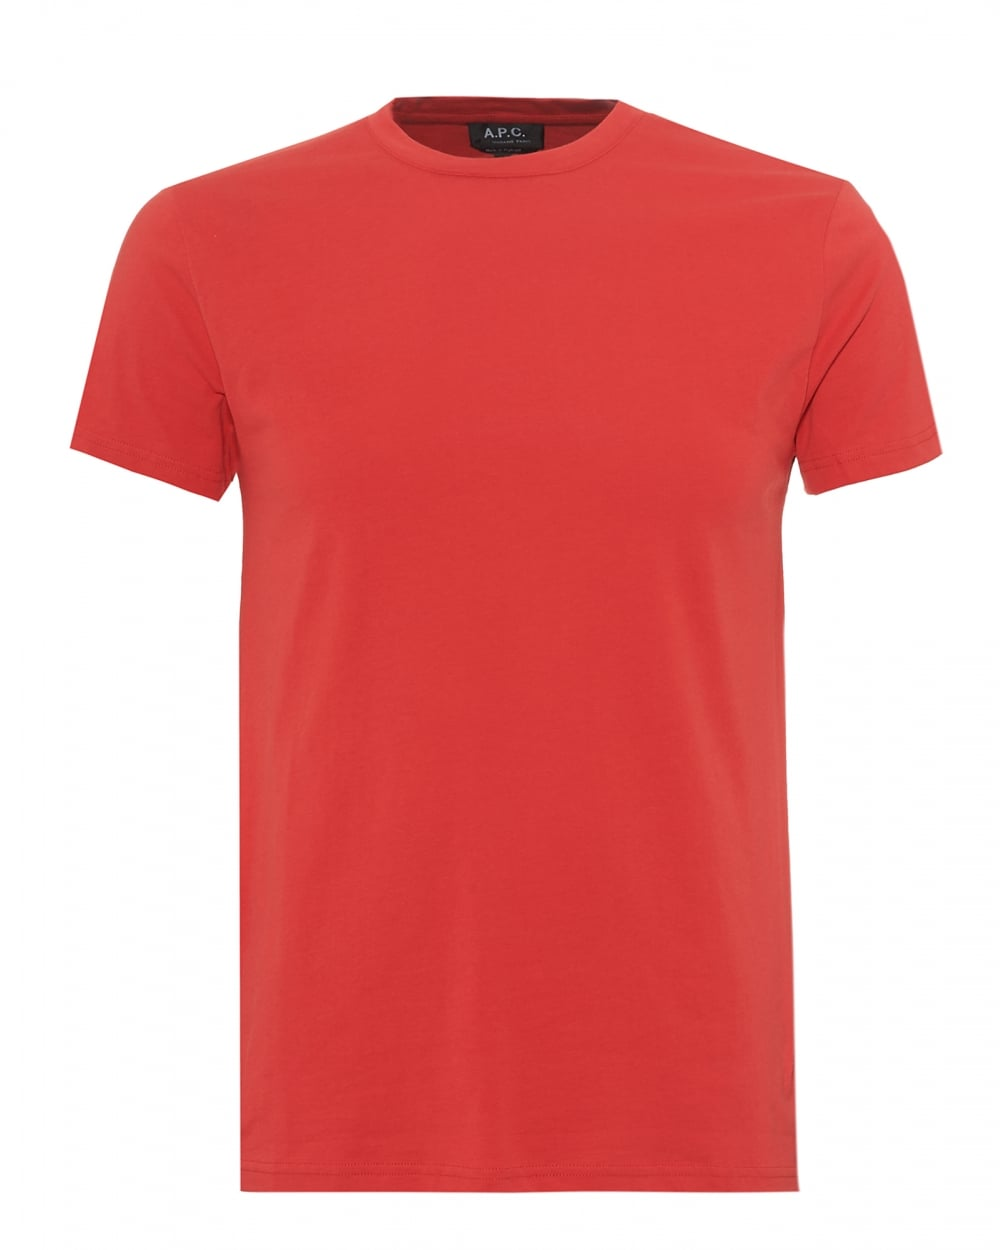 apc mens plain short sleeve tshirt regular fit red tee